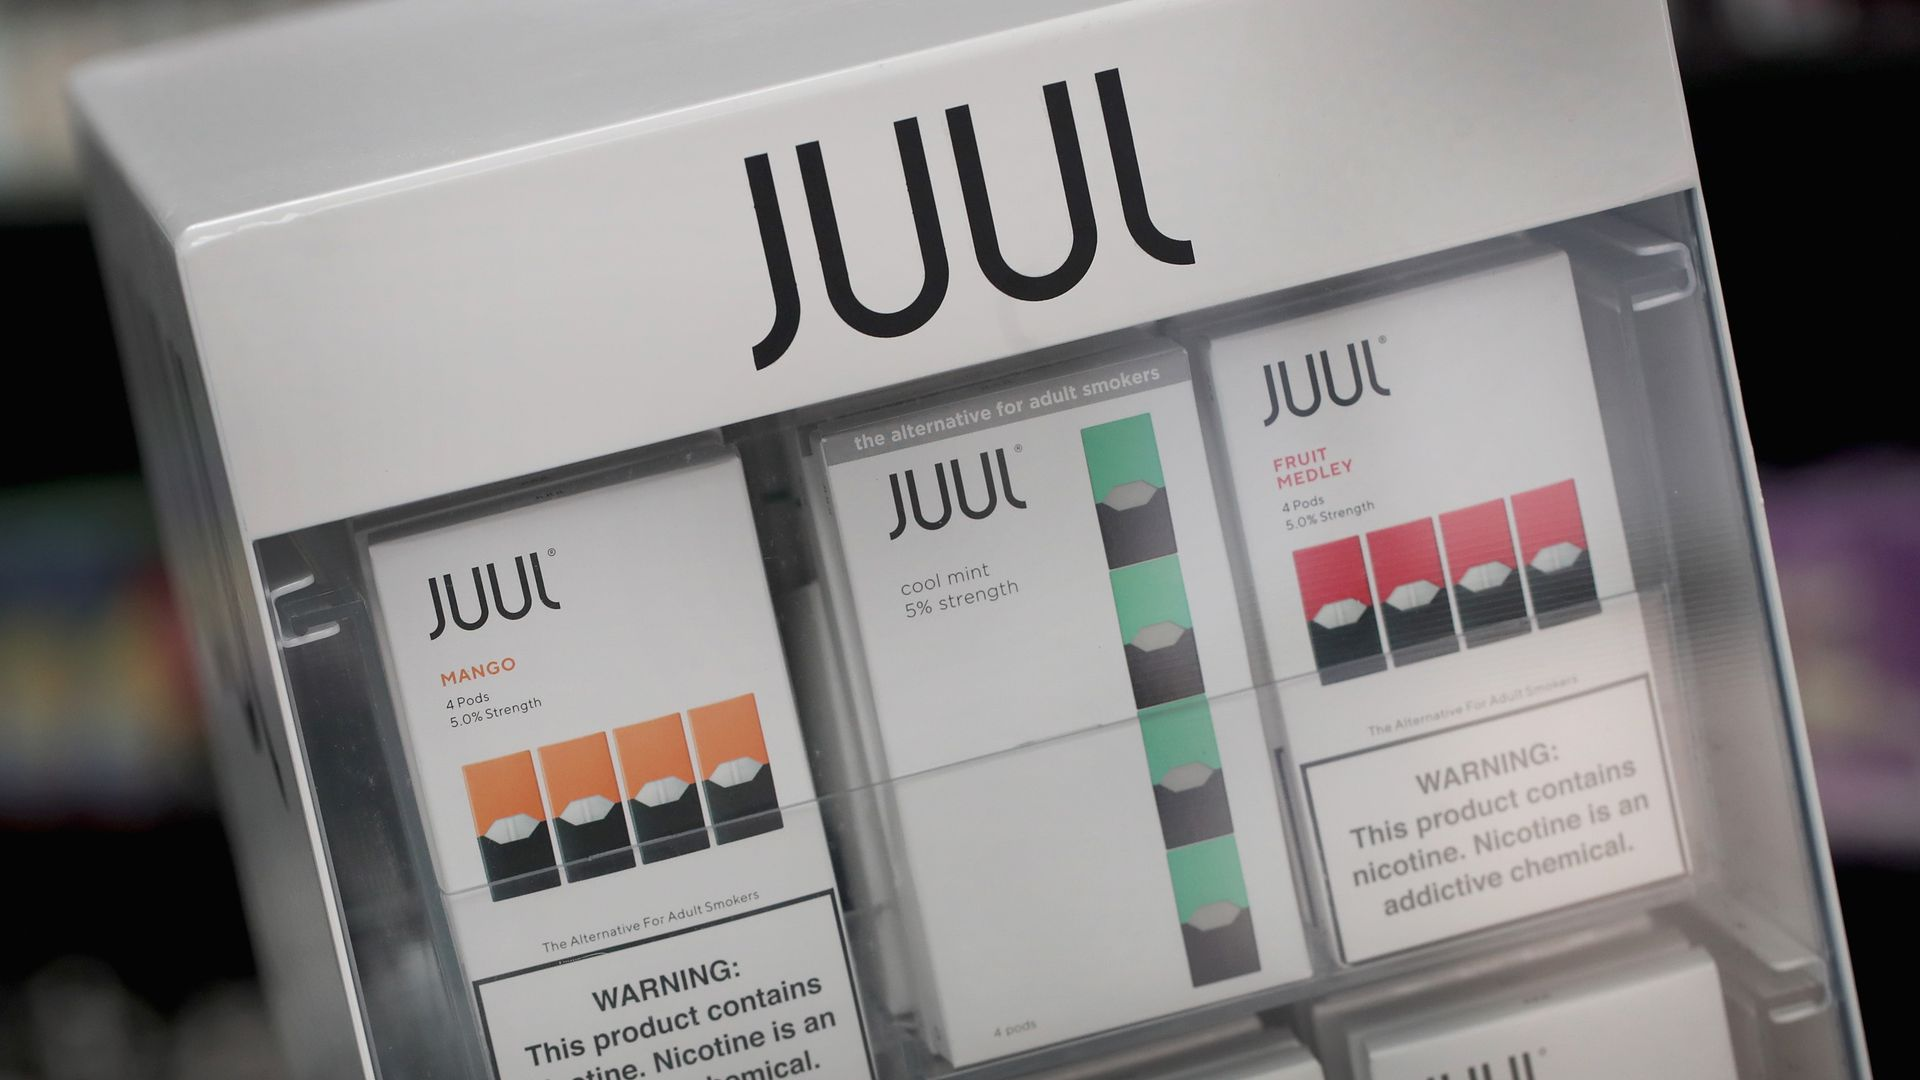 Juul CEO apologizes to parents and says more studies needed